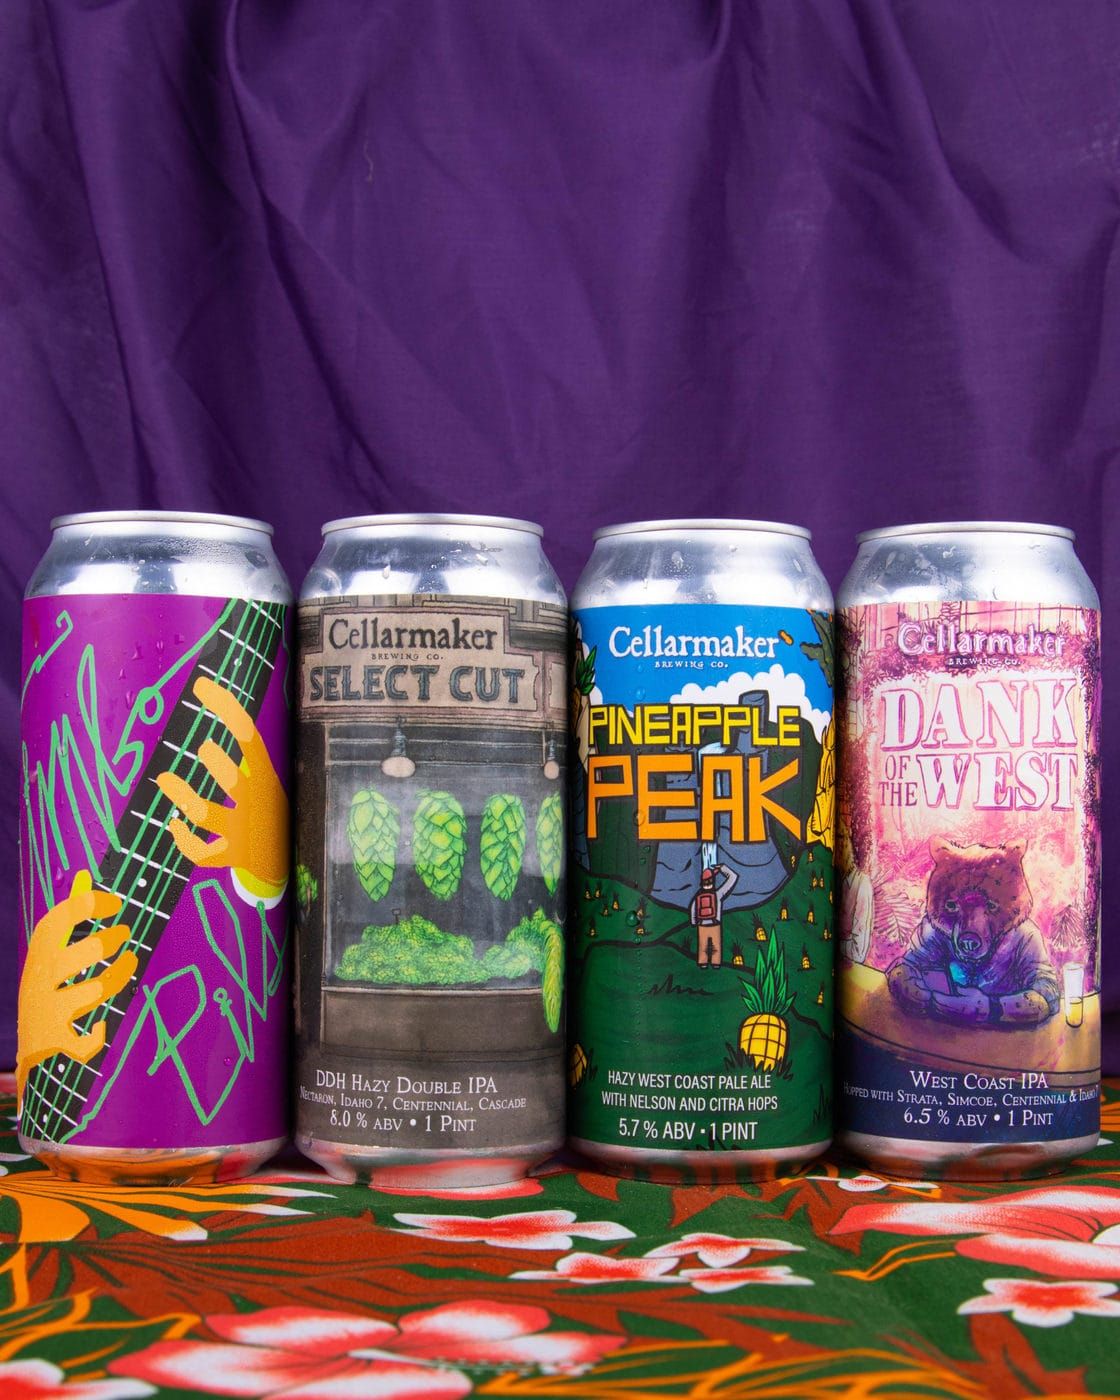 16 CANS 4×4 MIX – 4 Simcoe Galaxy IPA, 4 Dobis Pale Ale, 4 Juice Kiosk And 4 Wicked Juicy IPA  – Shipping Out Wednesday 7/28 For Next Day Delivery*